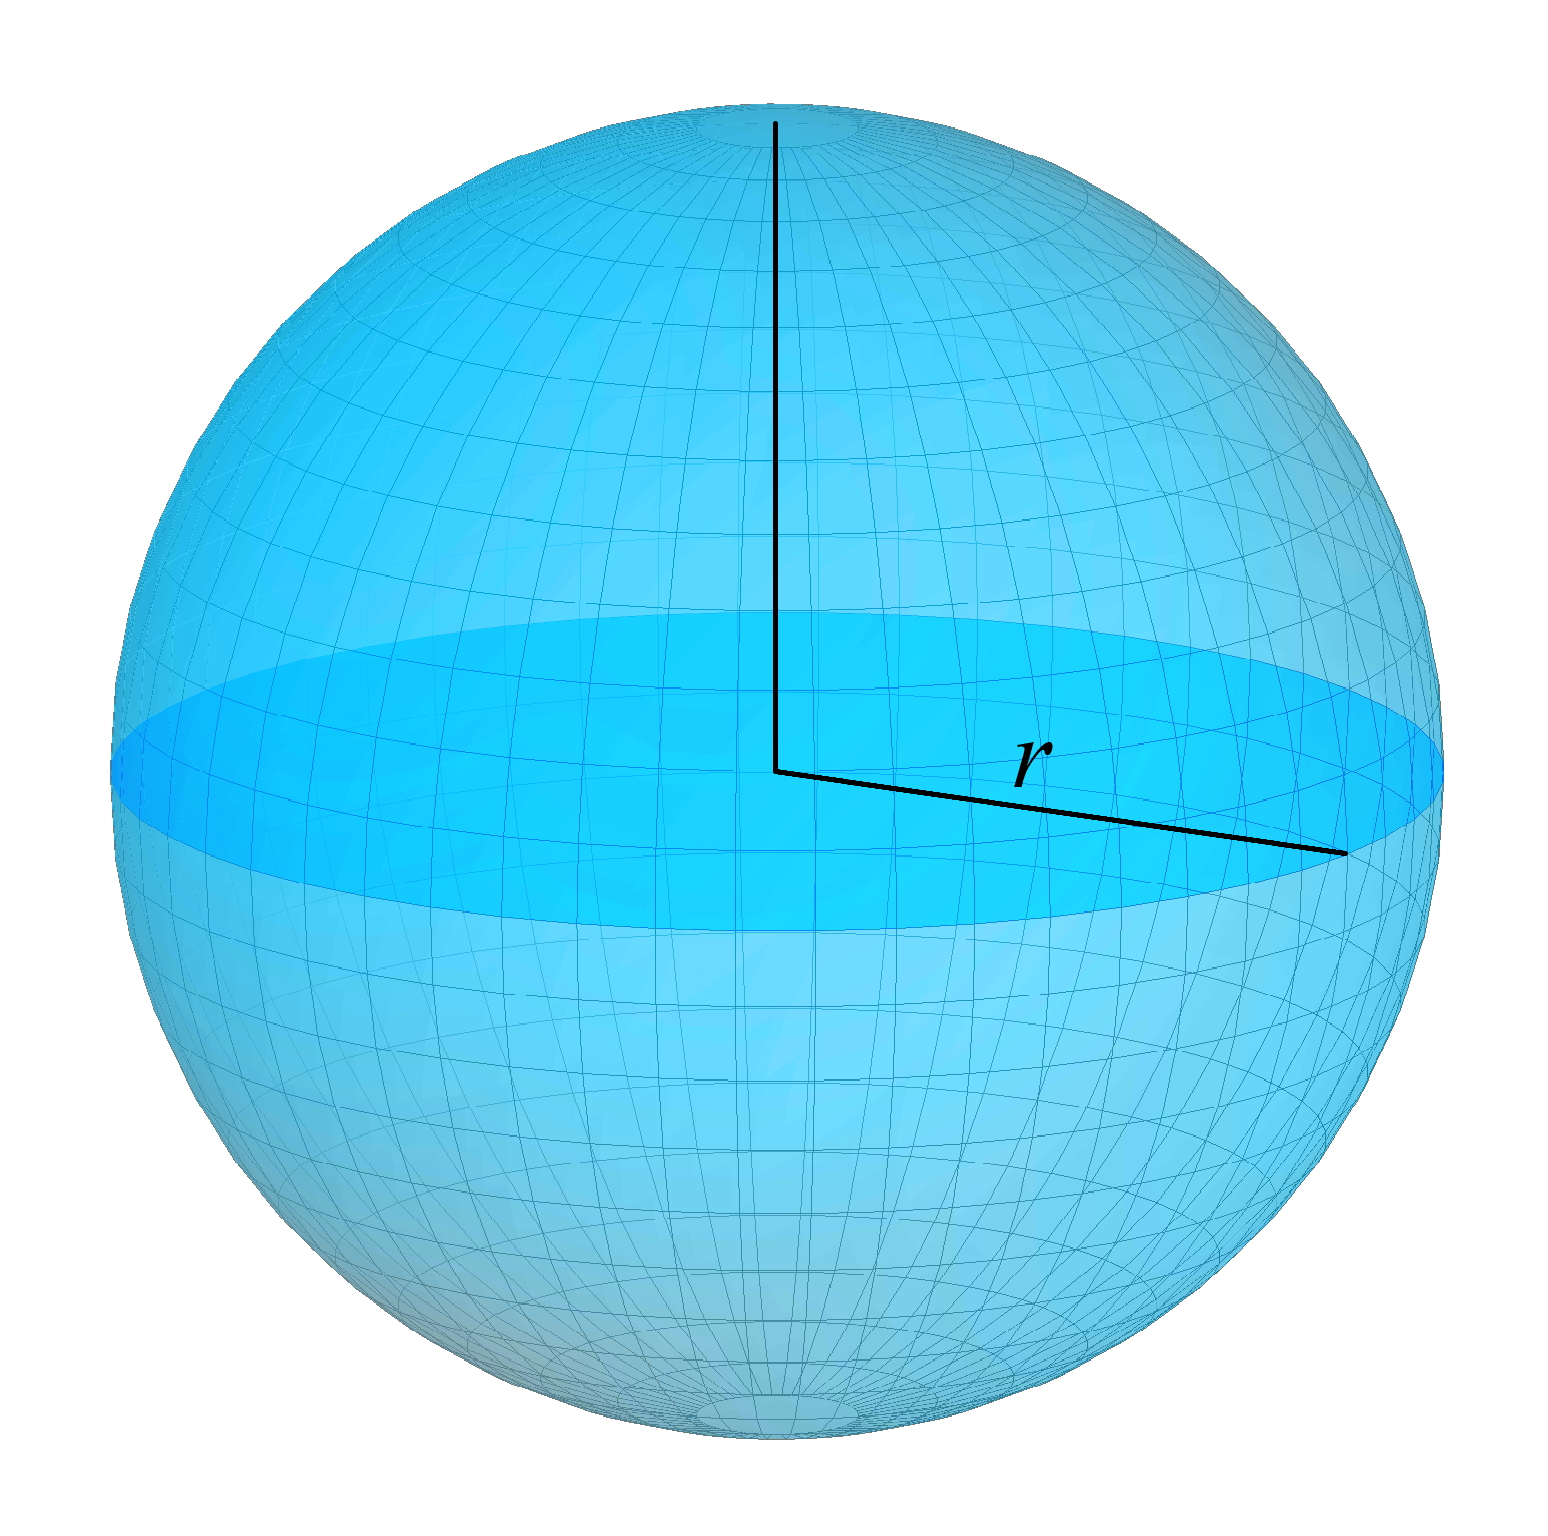 Sphere_and_Ball.png